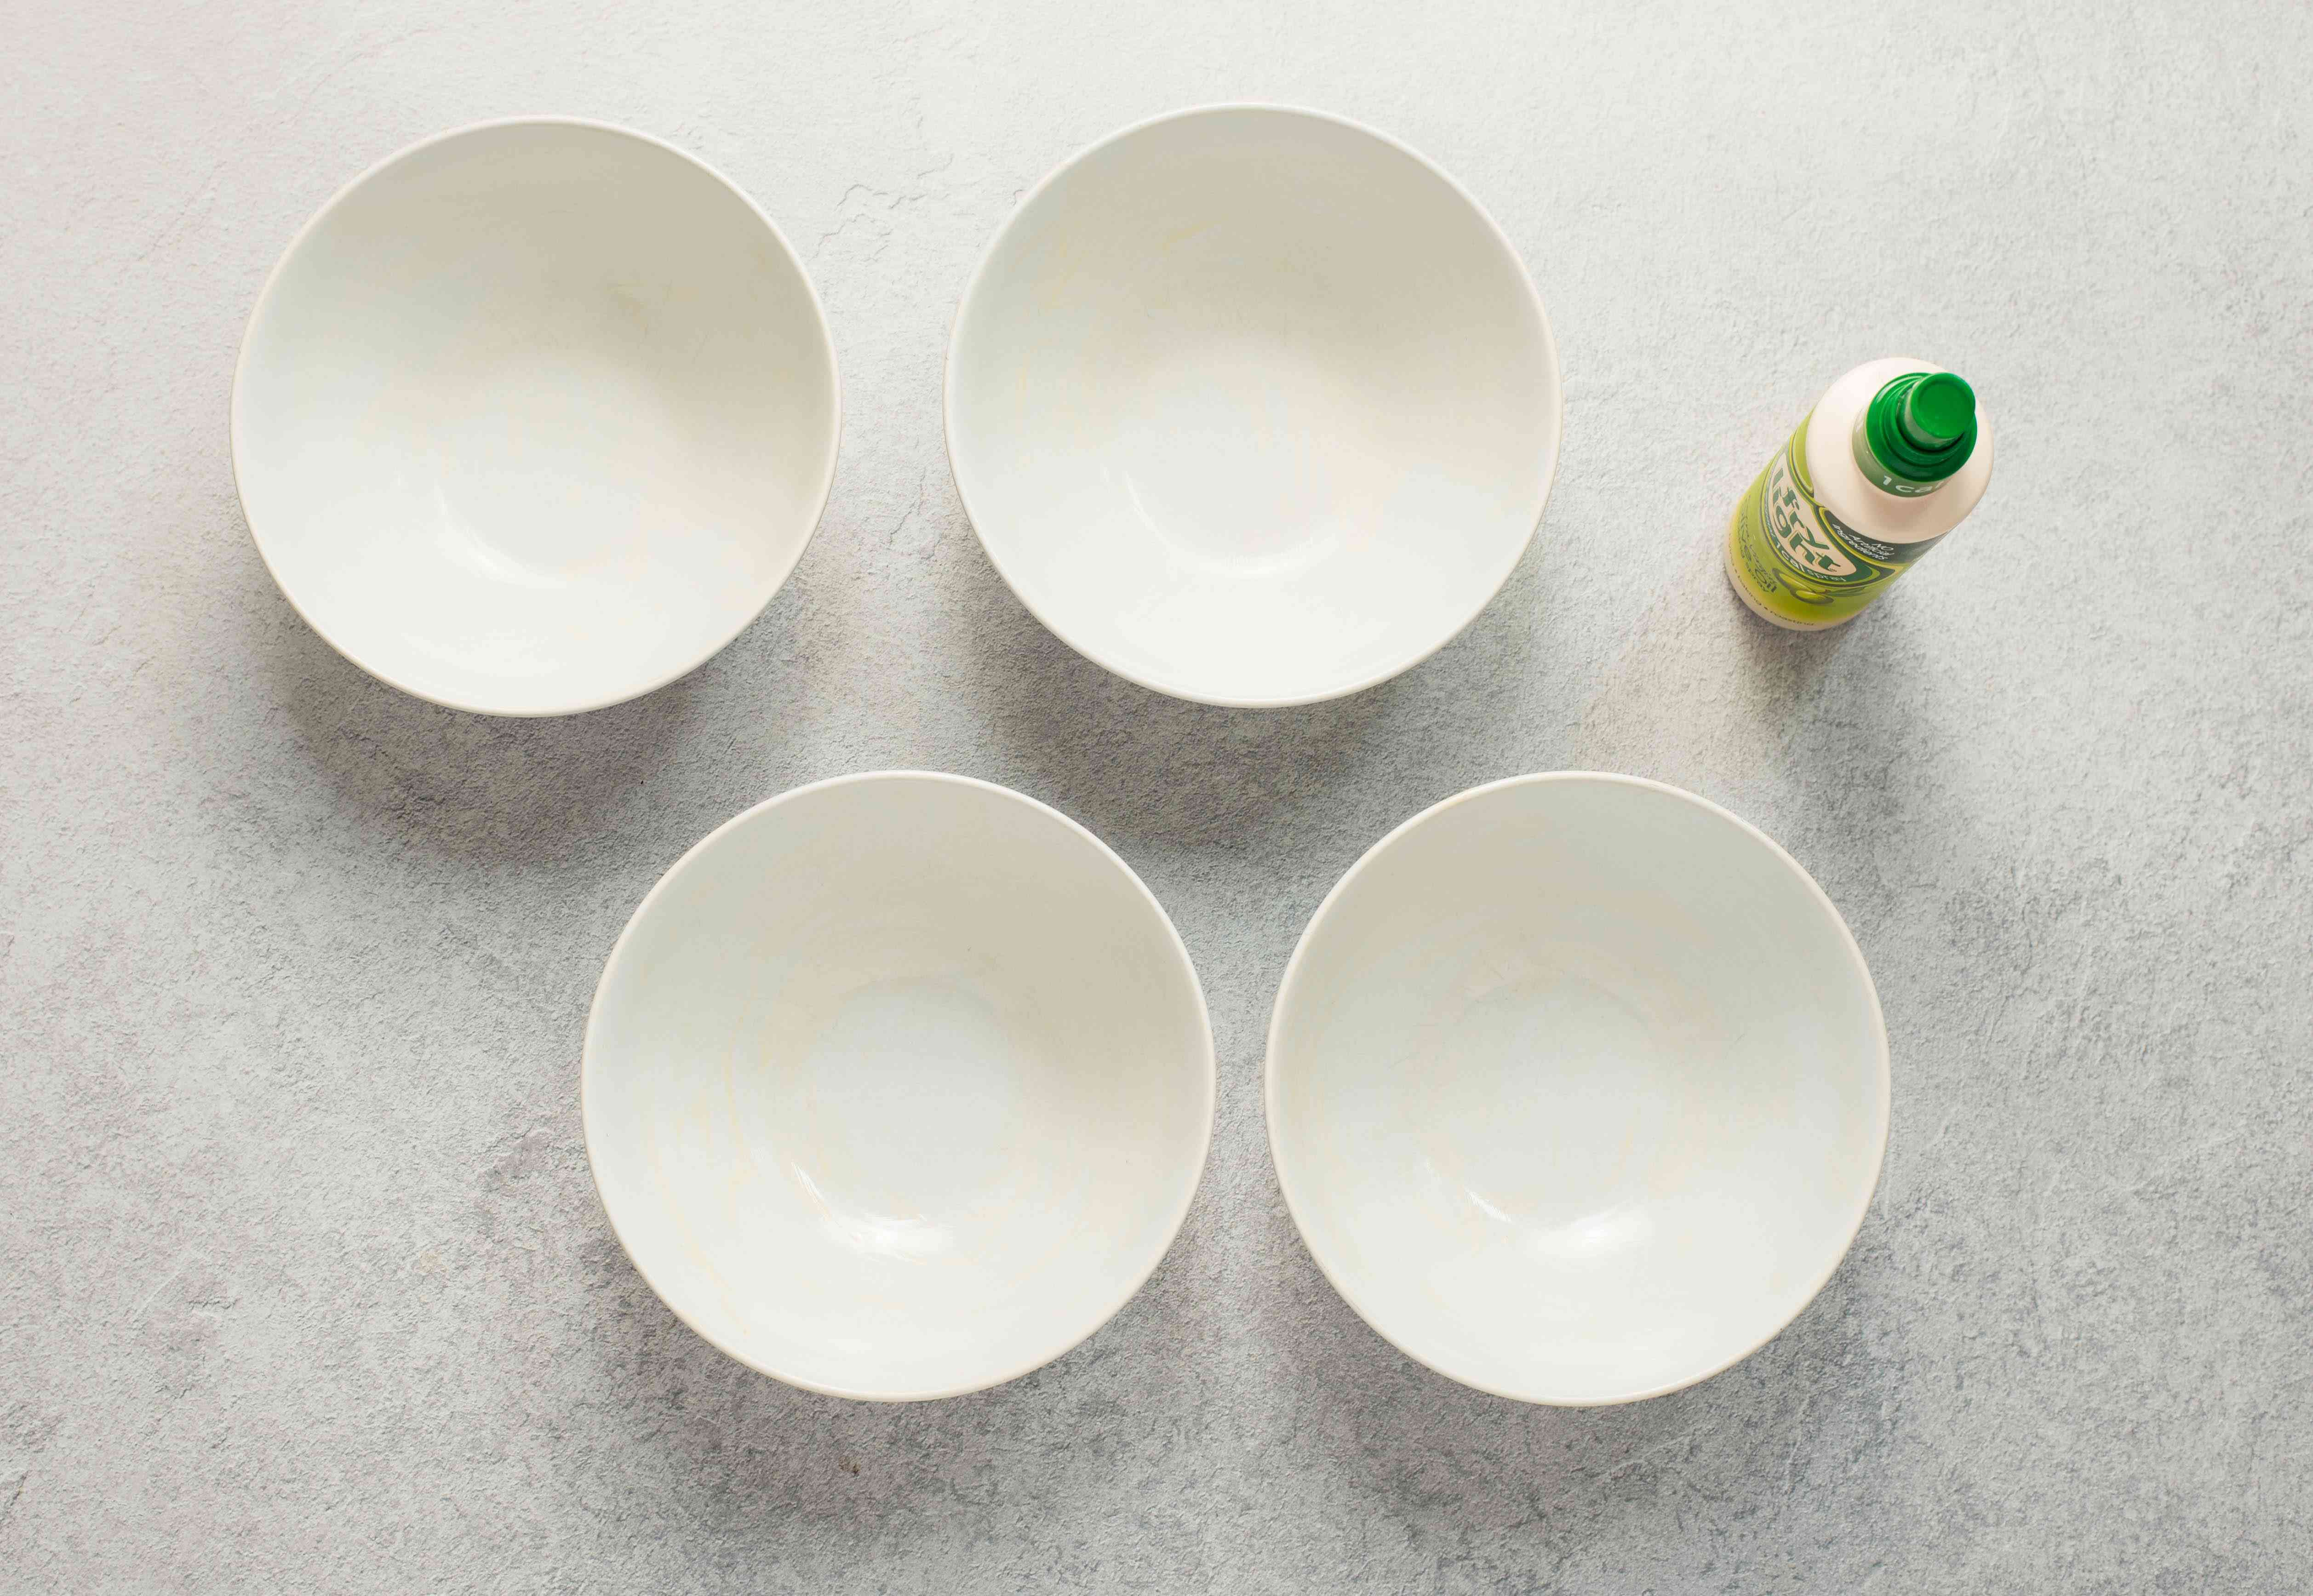 Coat bowls with olive oil